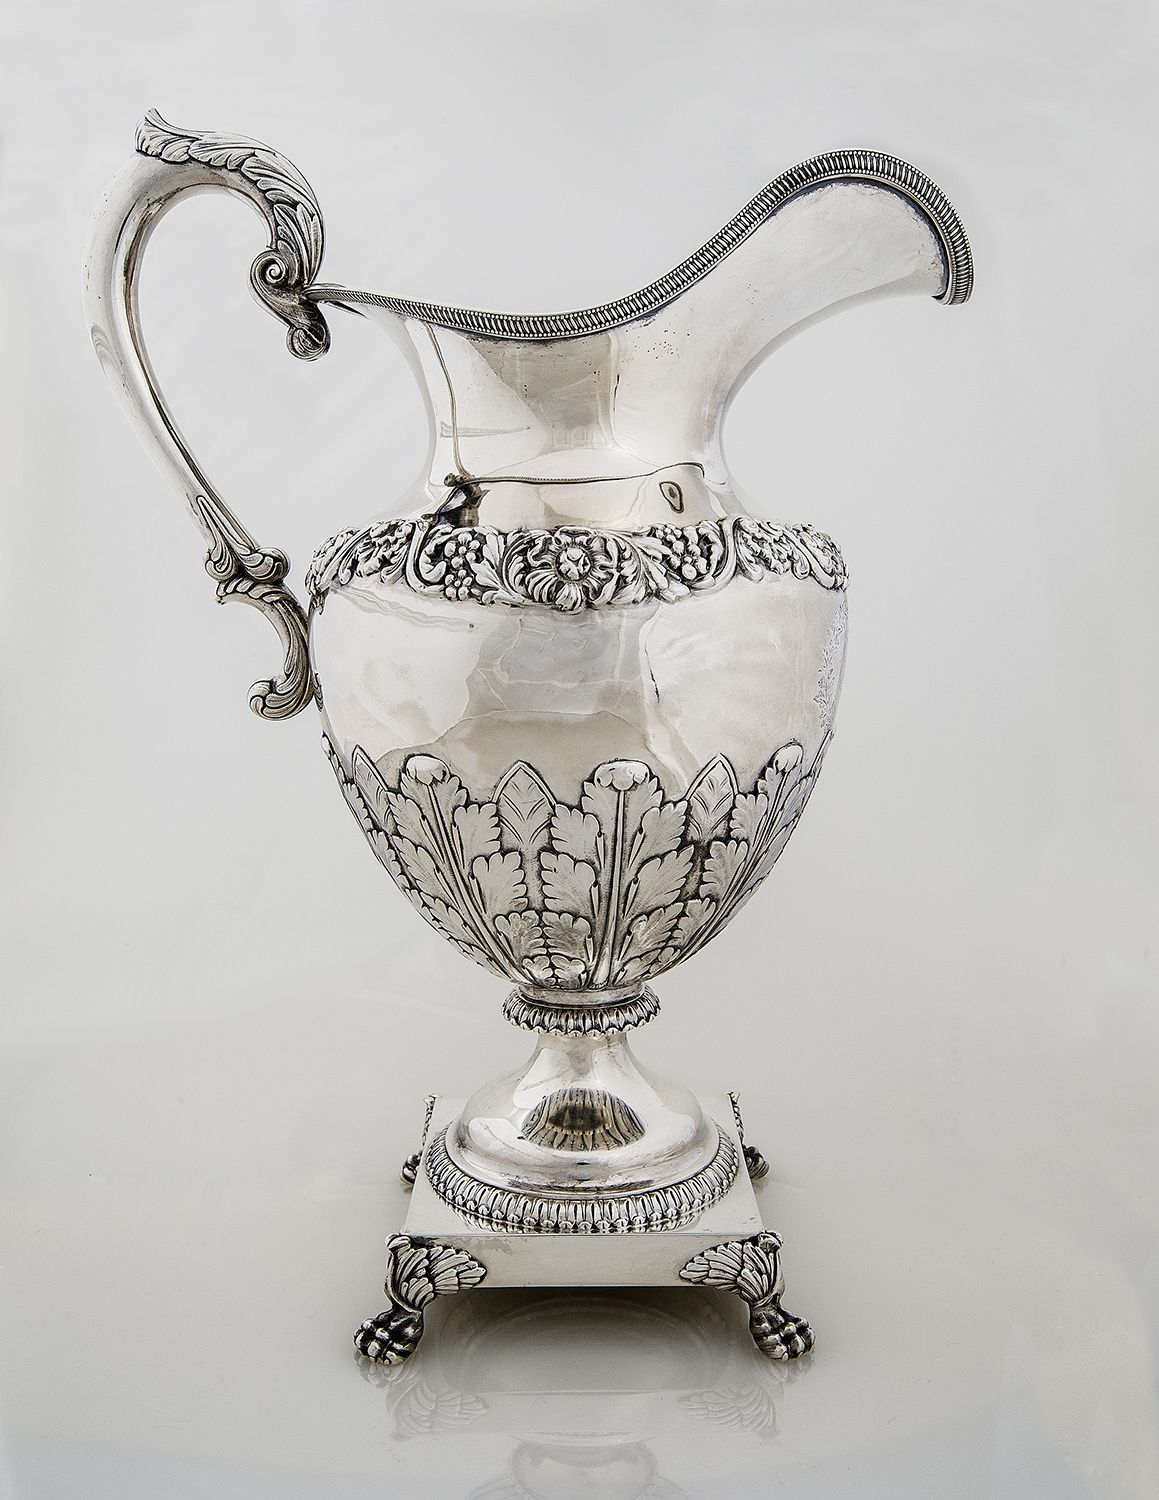 Monumental Ewer with Presentation Inscription to Mrs. John S. Barbour, 1832